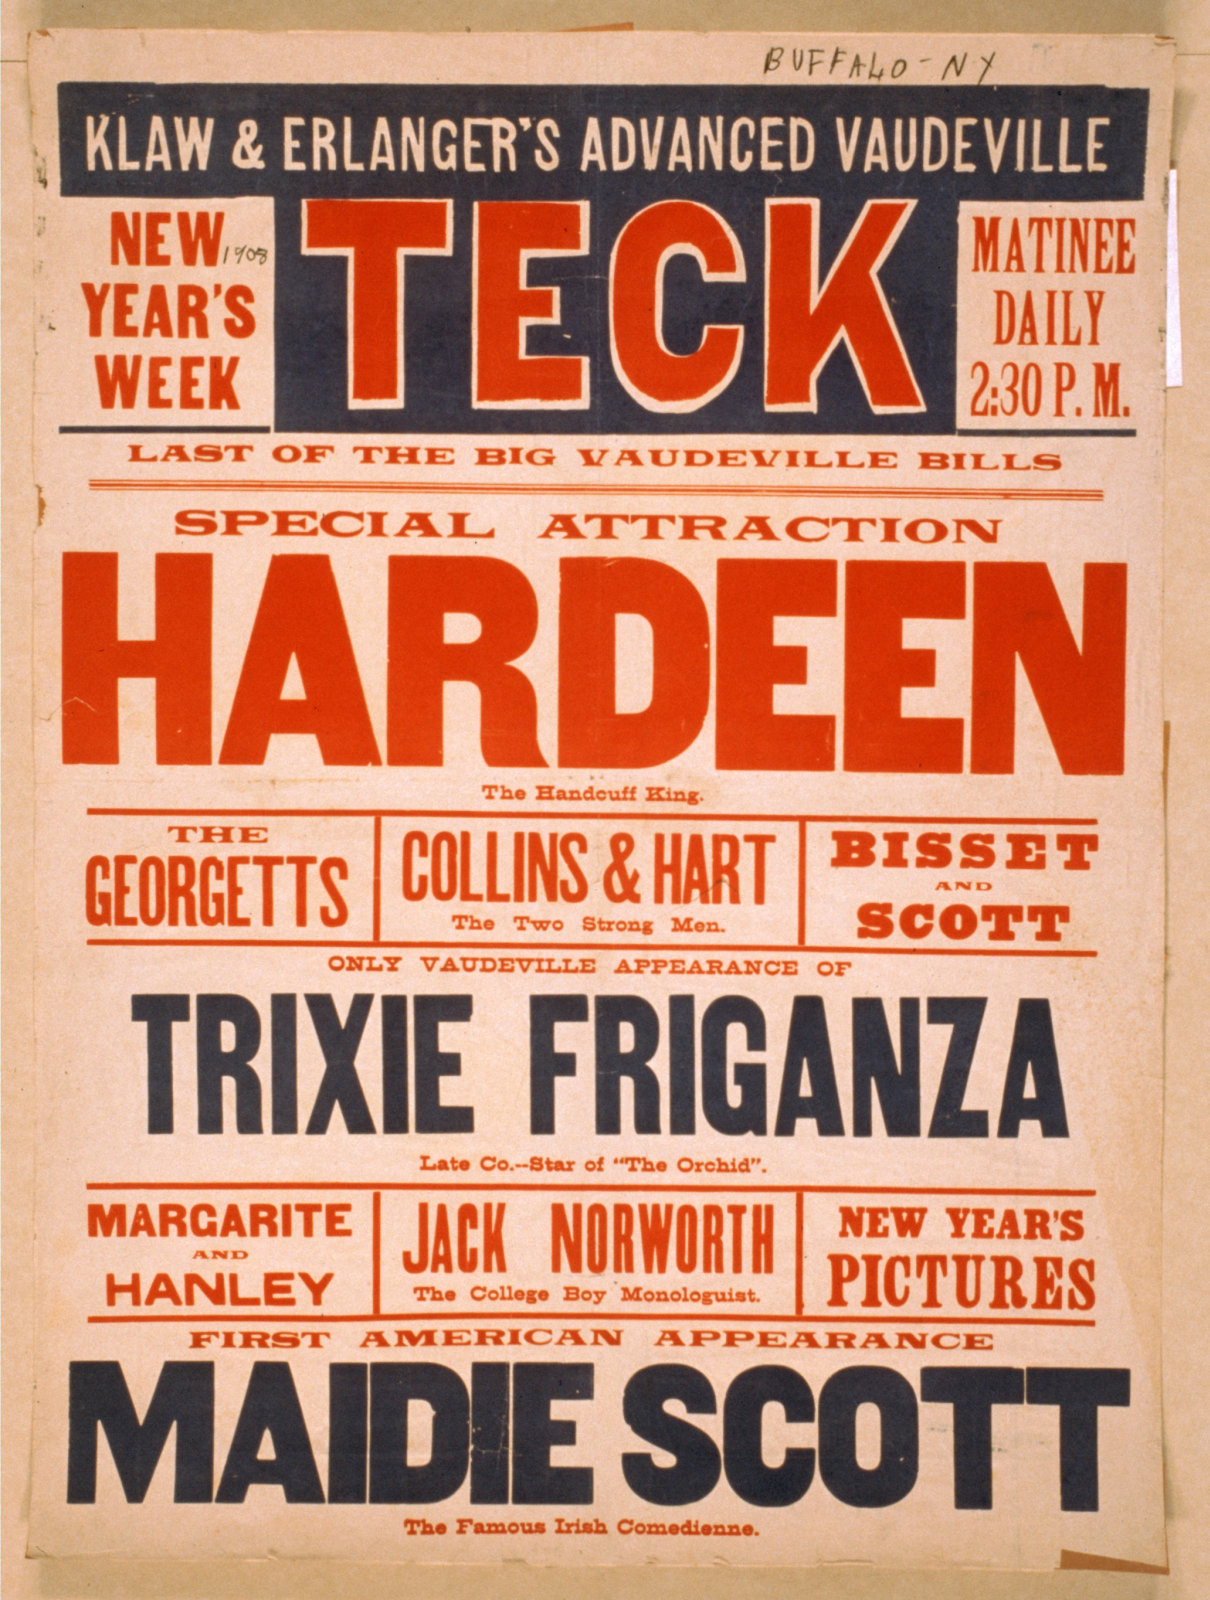 Poster for a Hardeen act on new years week, New York 1908